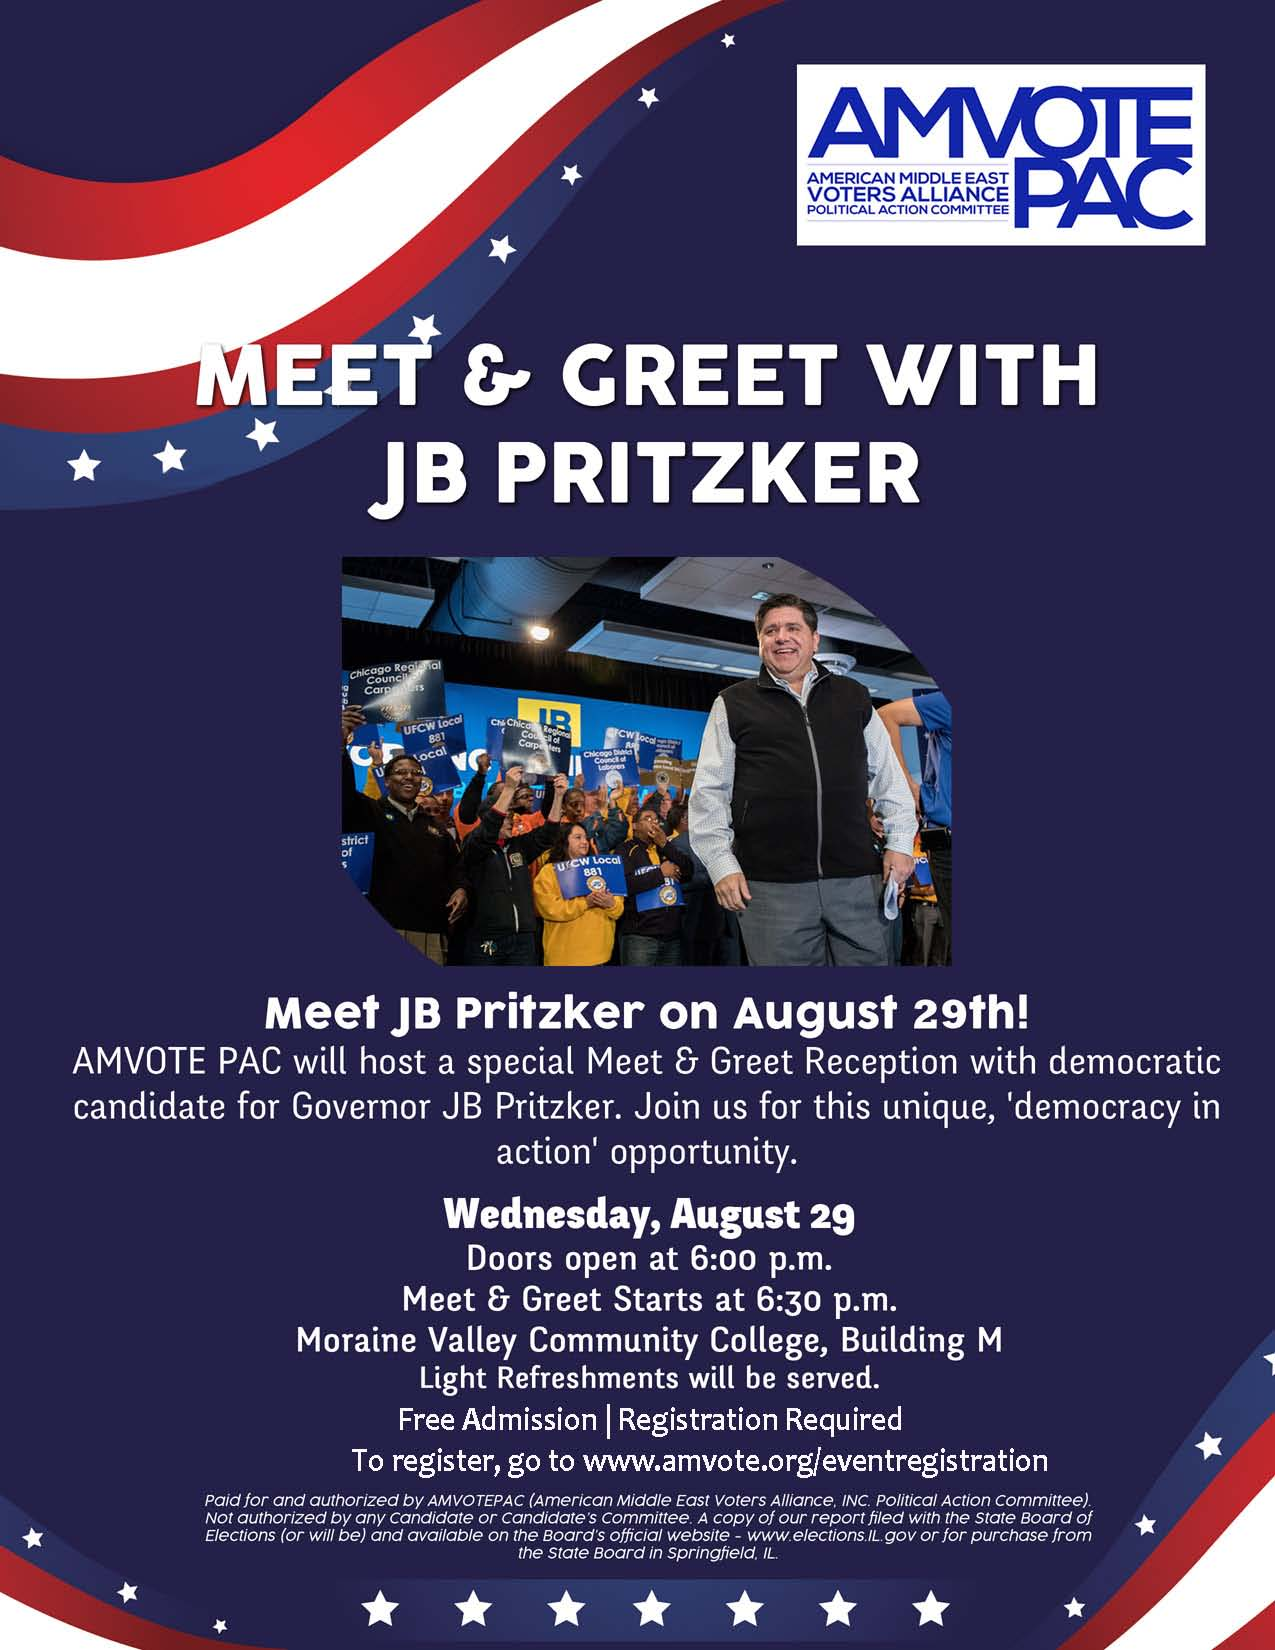 Meet Greet With Jb Pritzker Amvote Pac American Middle East